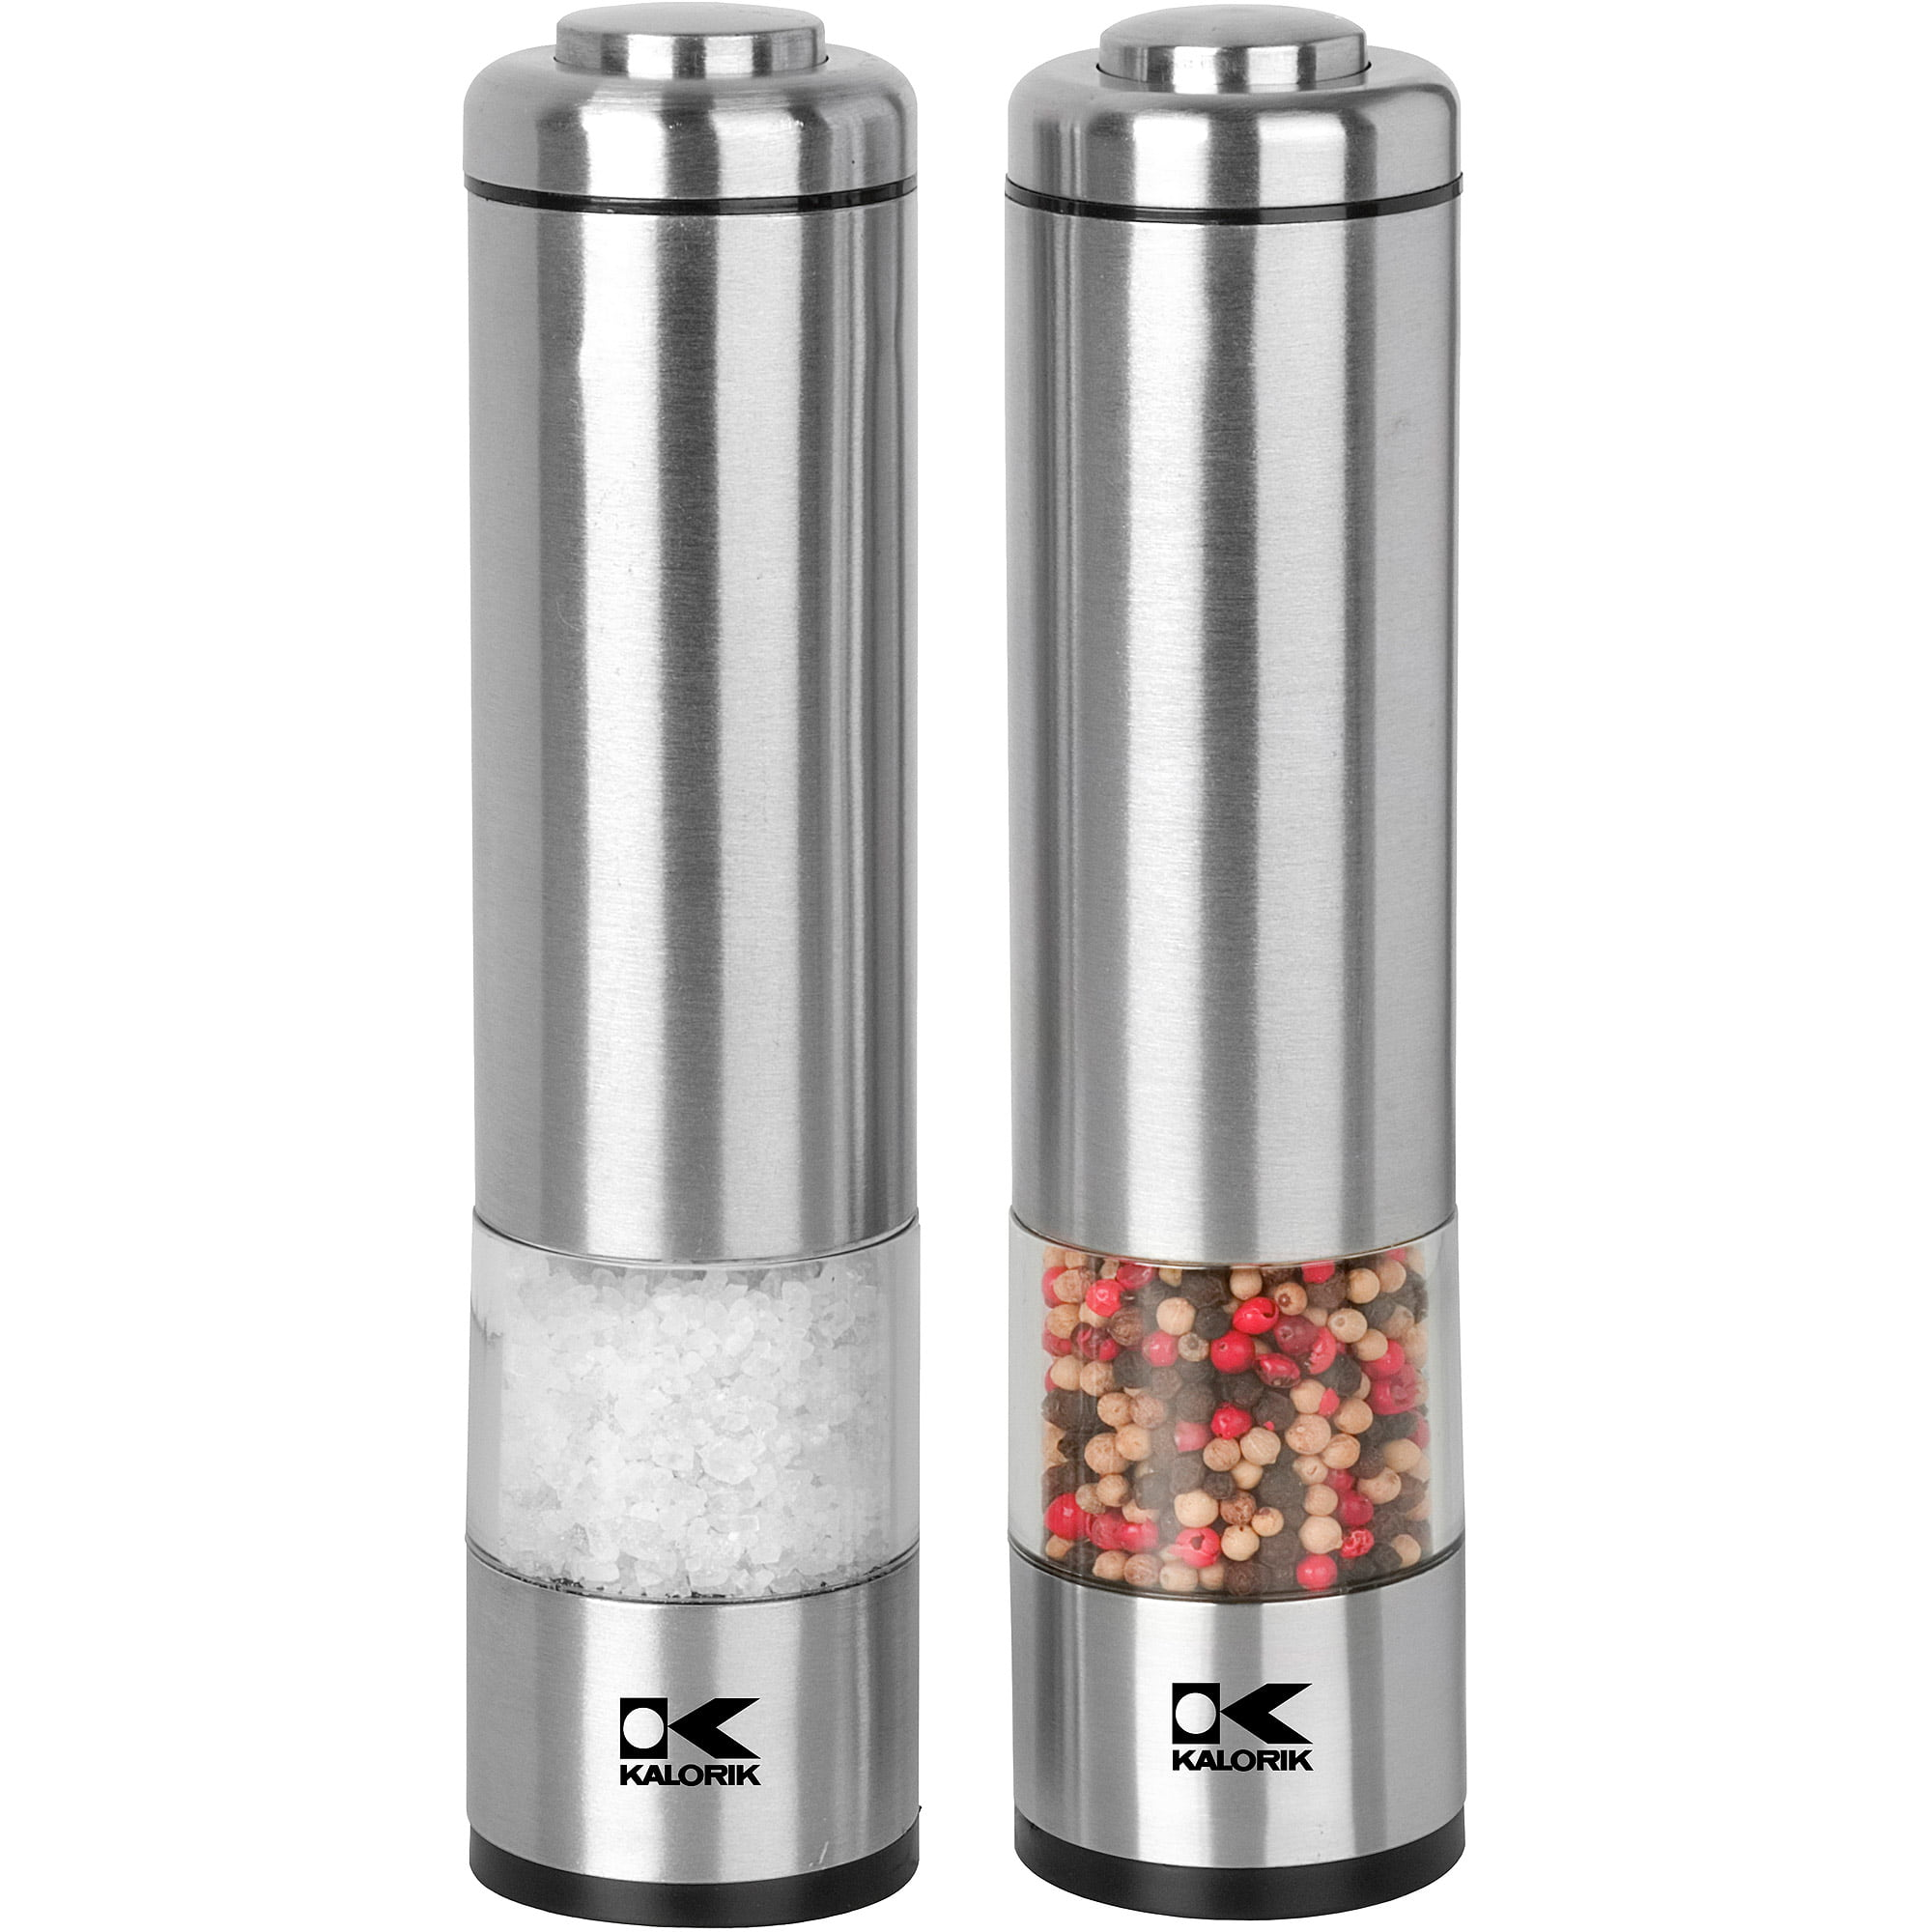 Kalorik Salt and Pepper Grinder Set by Kalorik